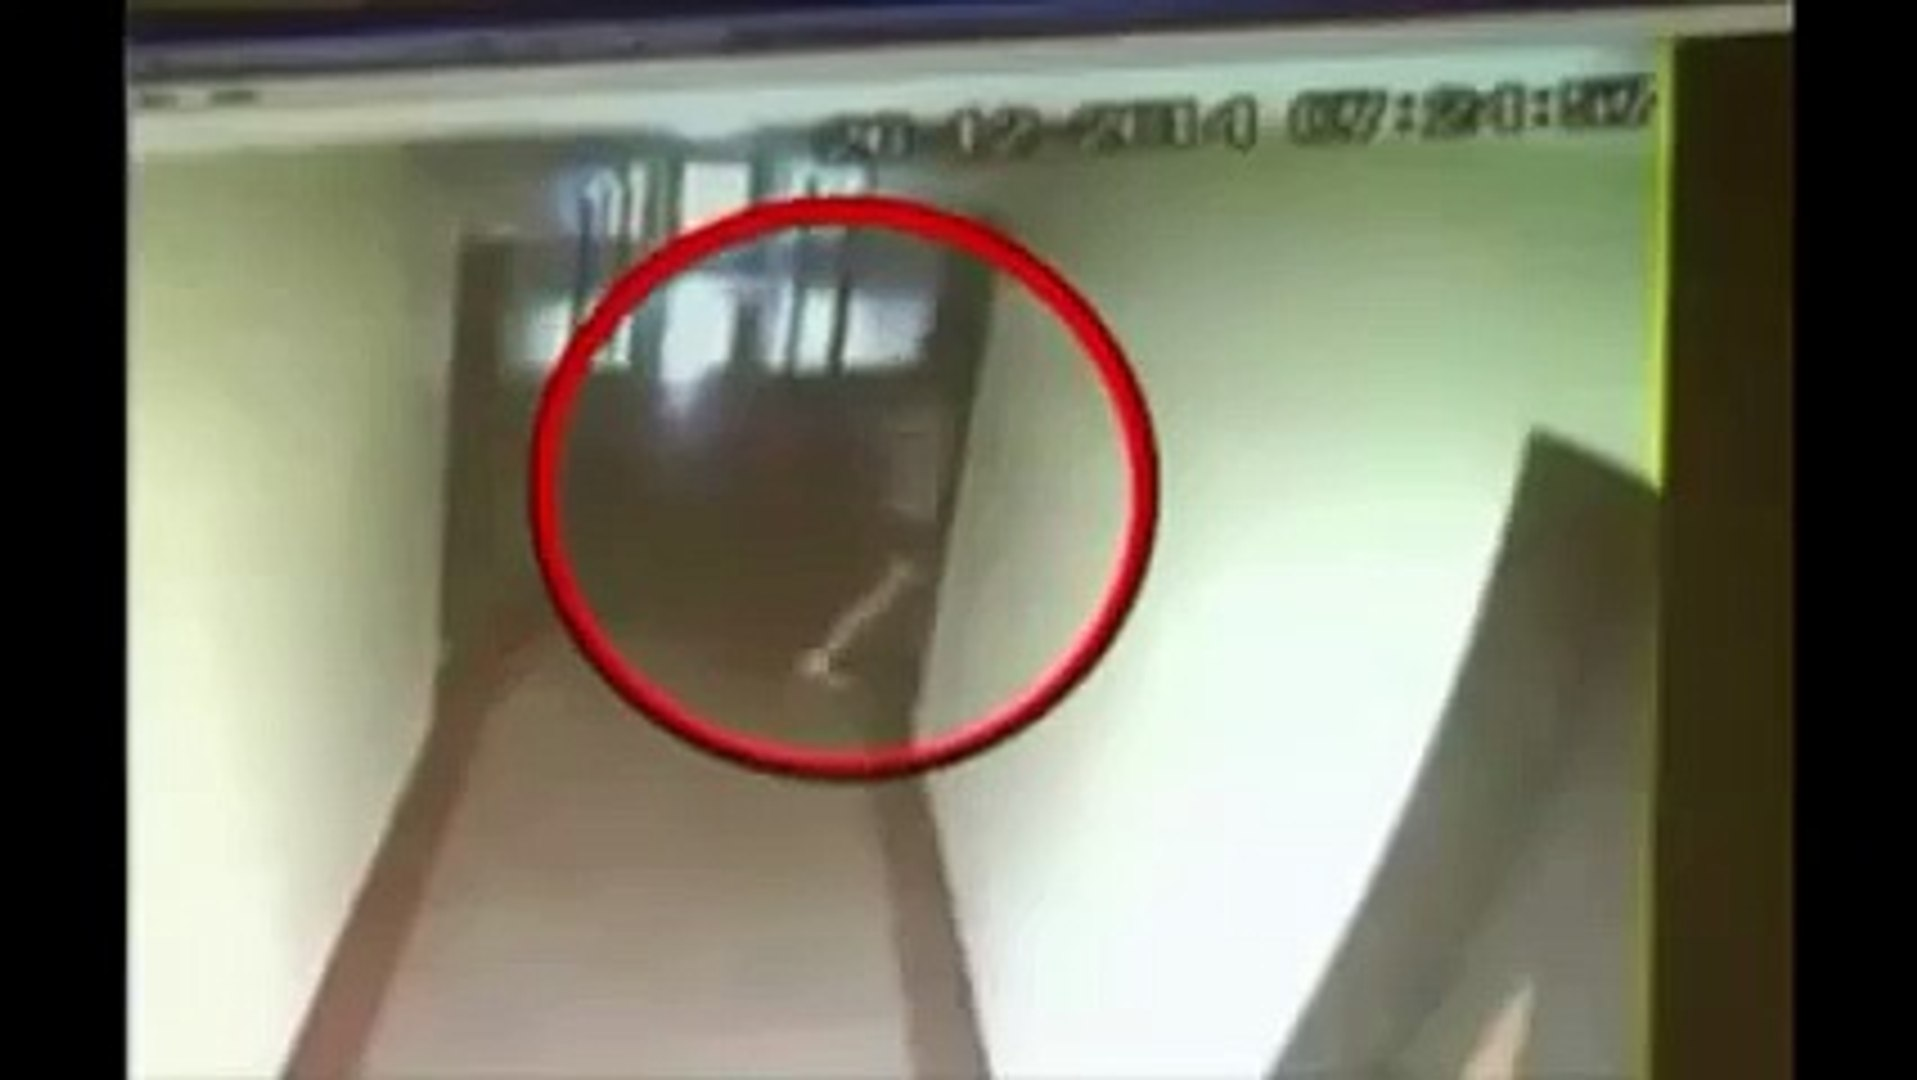 Indian Female TT players caught on CCTV leaving coach's room (Full Video)